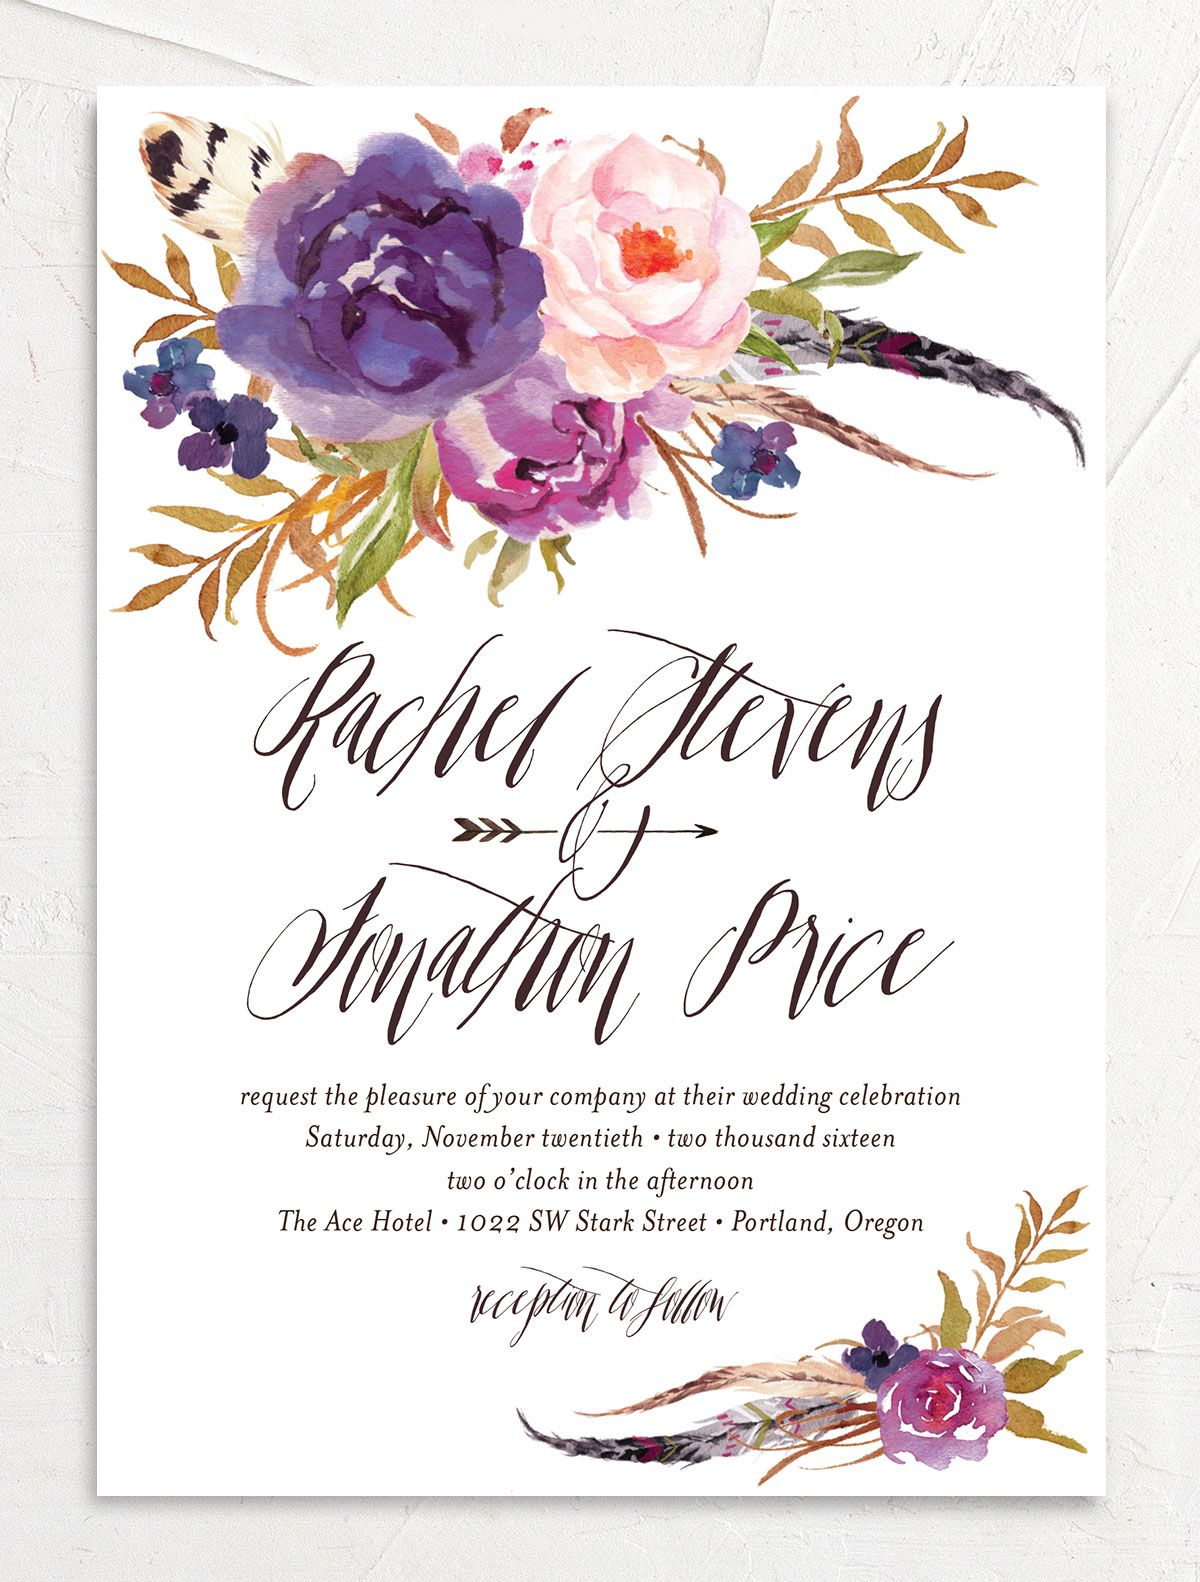 bohemian floral wedding invitations in purple